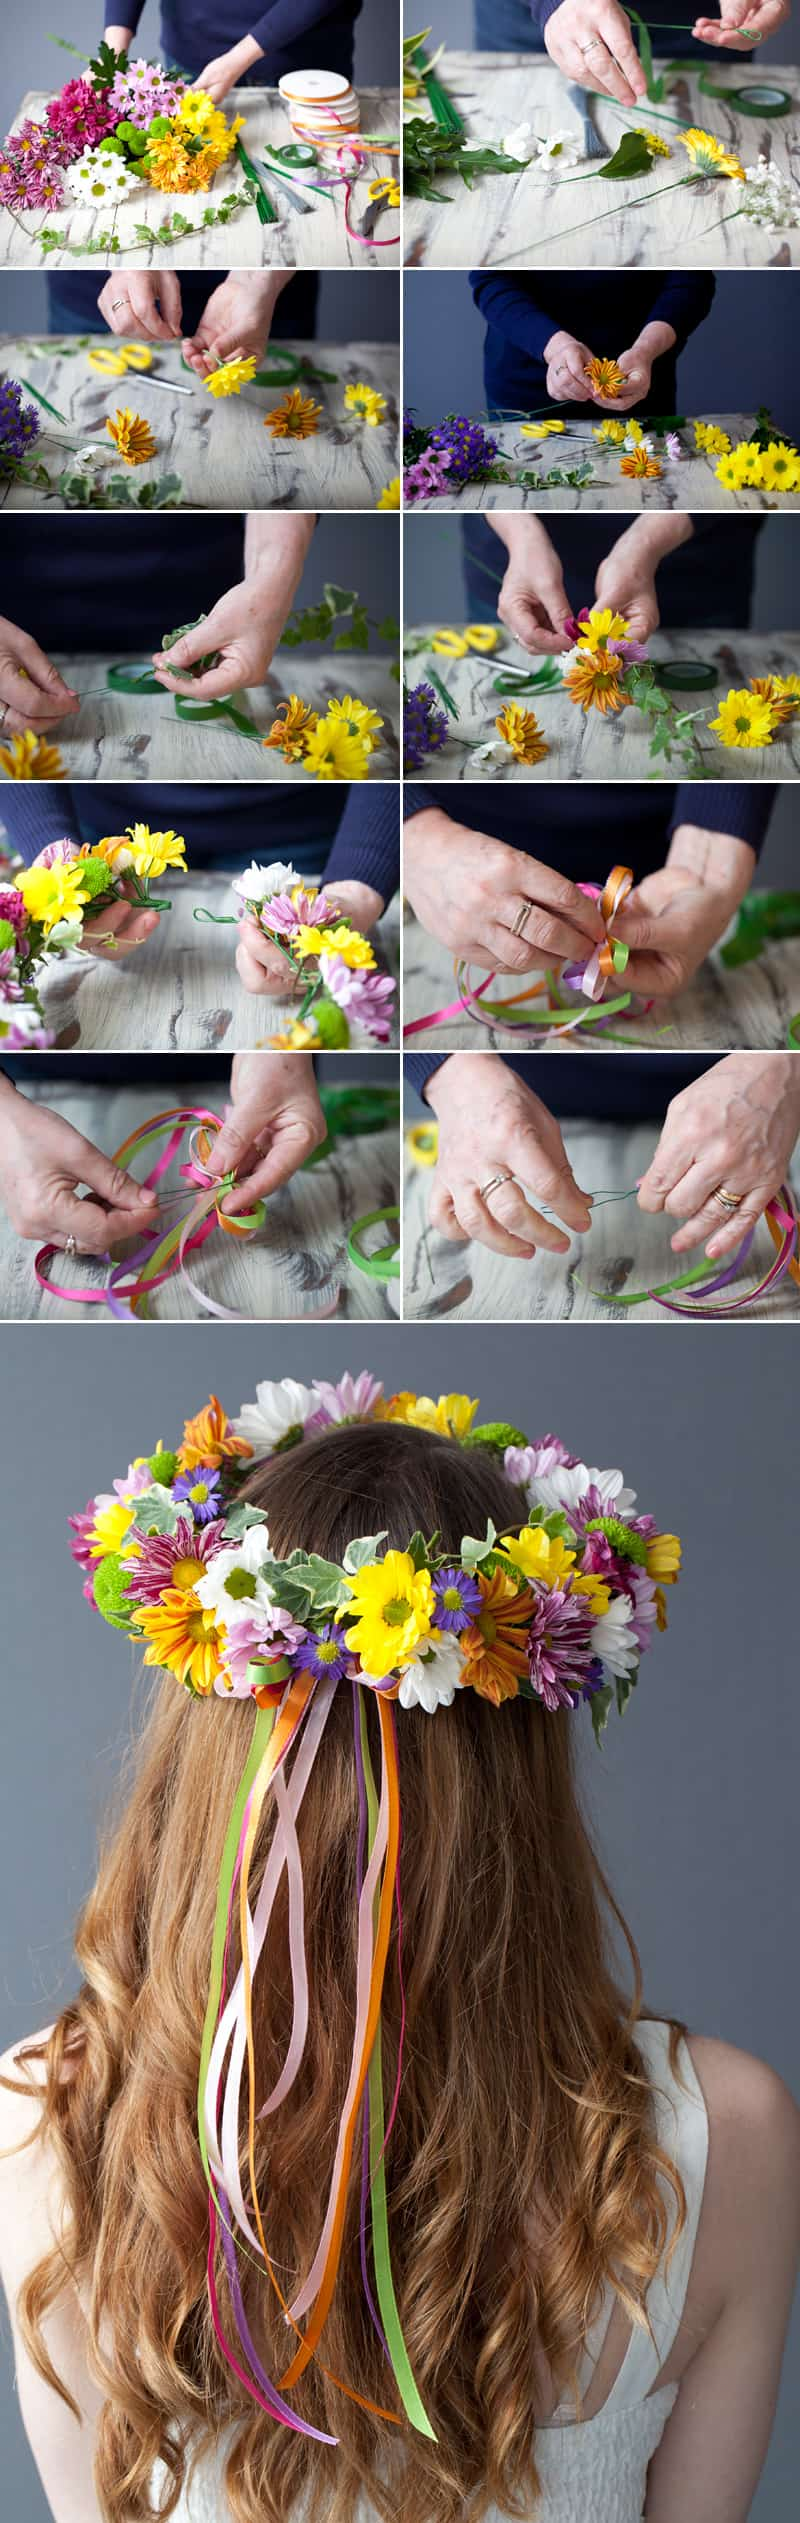 How to make a vibrant floral head crown bespoke bride wedding blog how to make a vibrant hair garland diy izmirmasajfo Choice Image